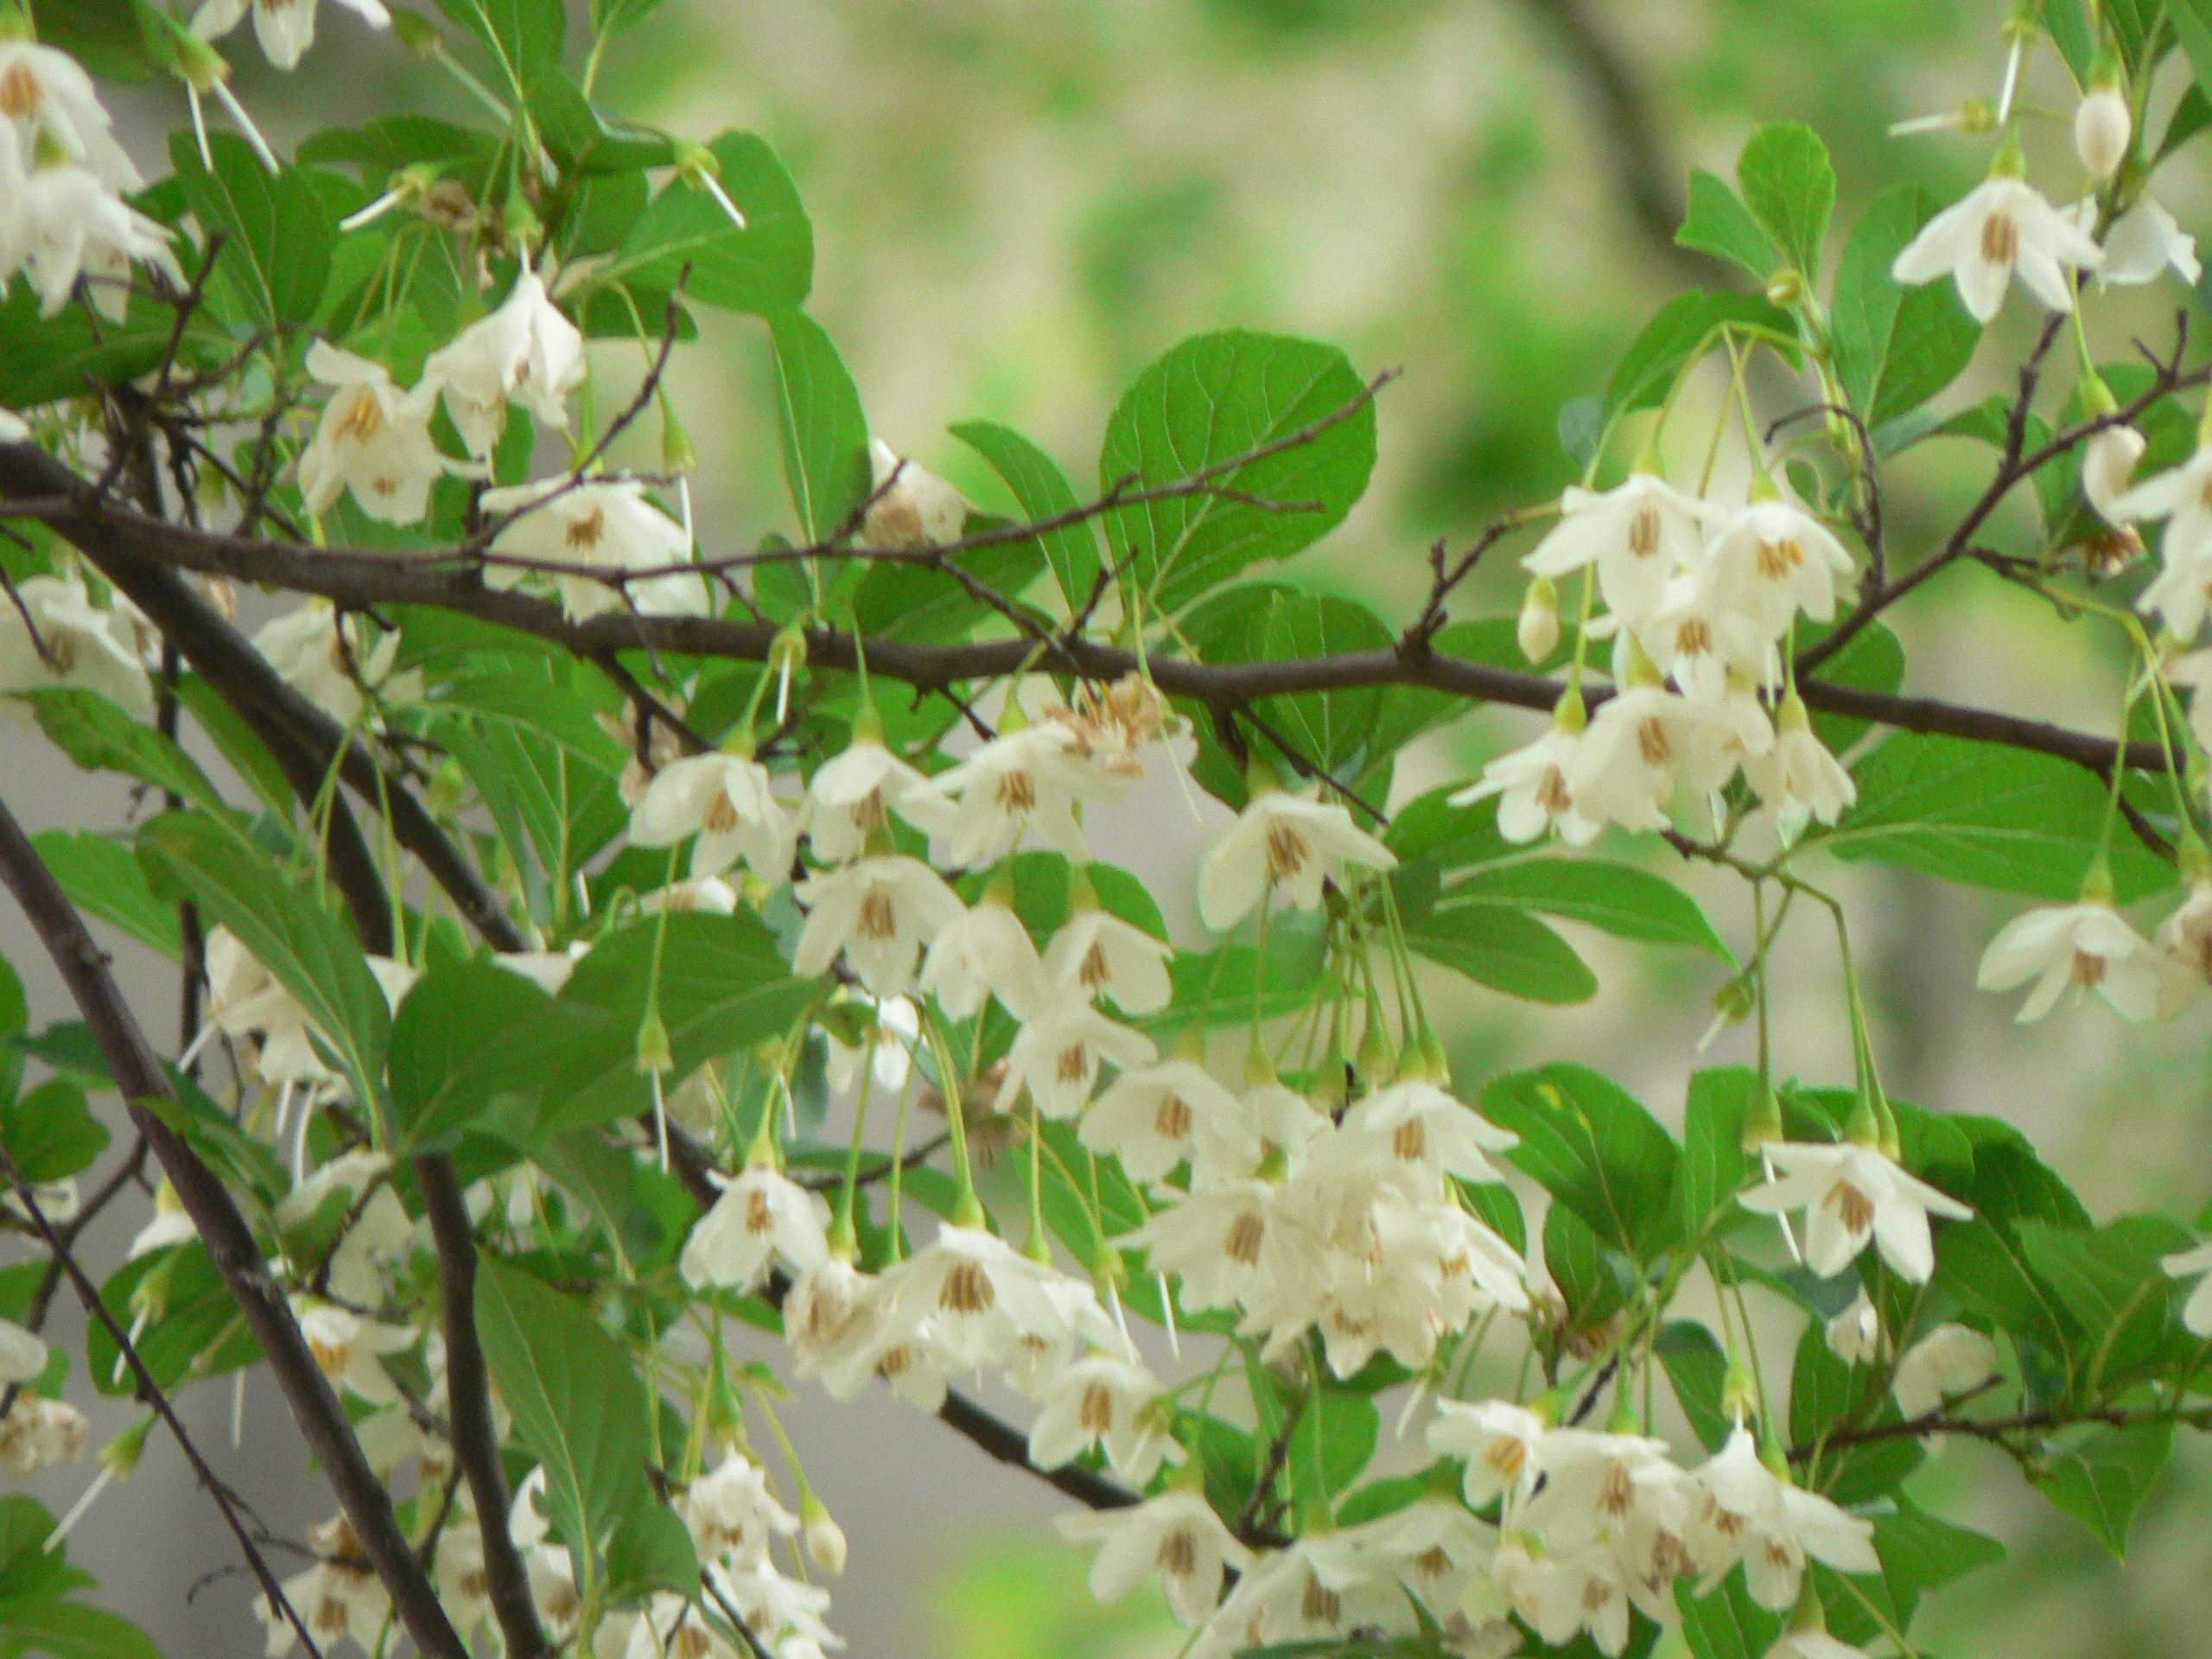 http://upload.wikimedia.org/wikipedia/commons/7/79/Styrax_japonica1.JPG